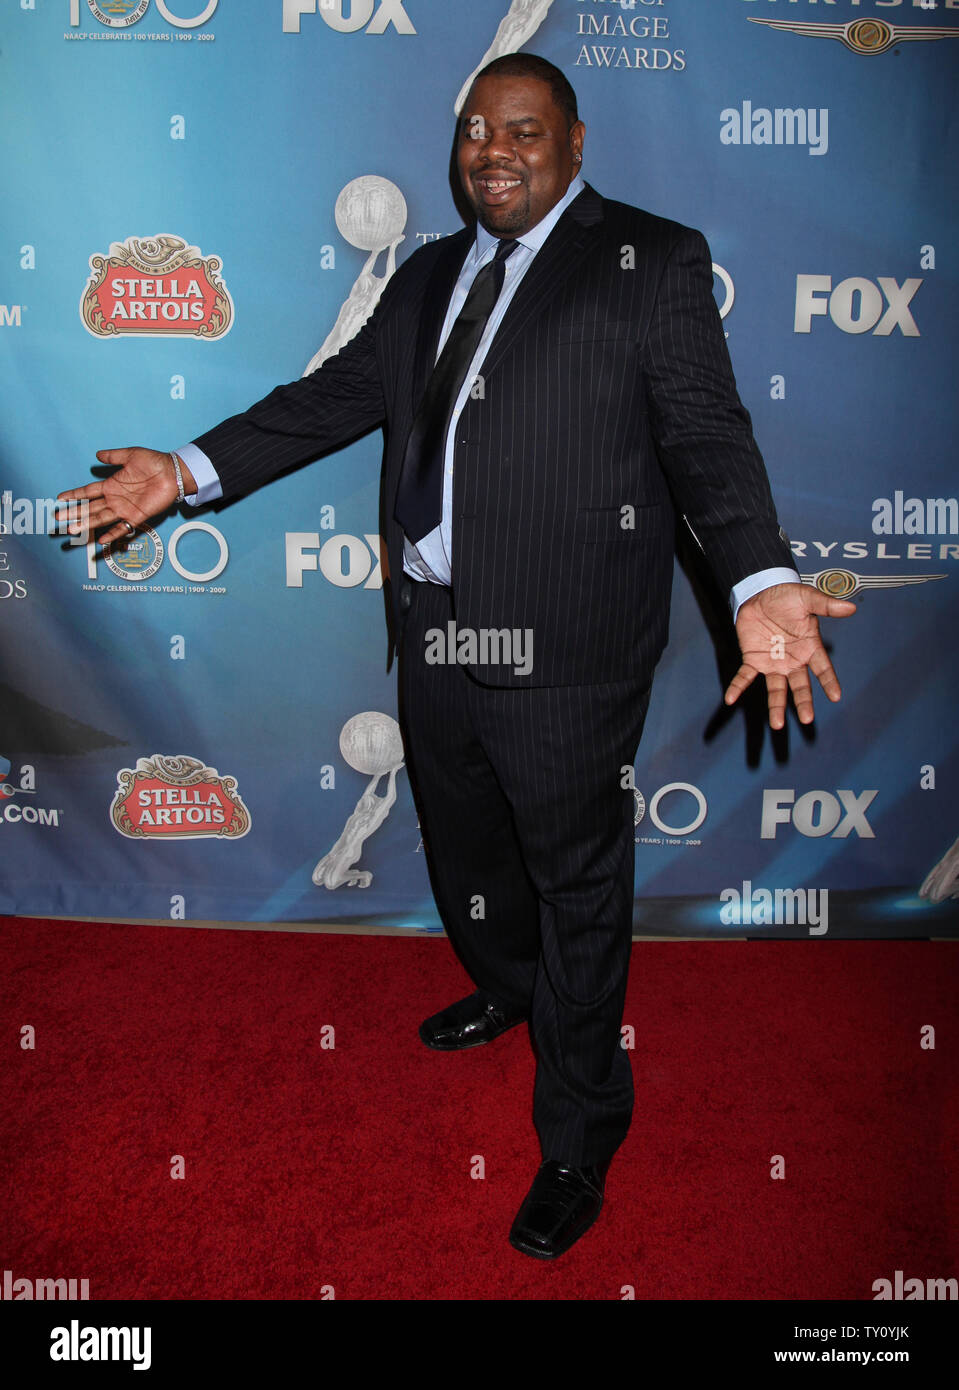 Biz Markie arrives at the 40th NAACP Image Awards post show gala in Los Angeles on February 12, 2009.  The event celebrated the 100th anniversary of the NAACP.   (UPI Photo/David Silpa) - Stock Image